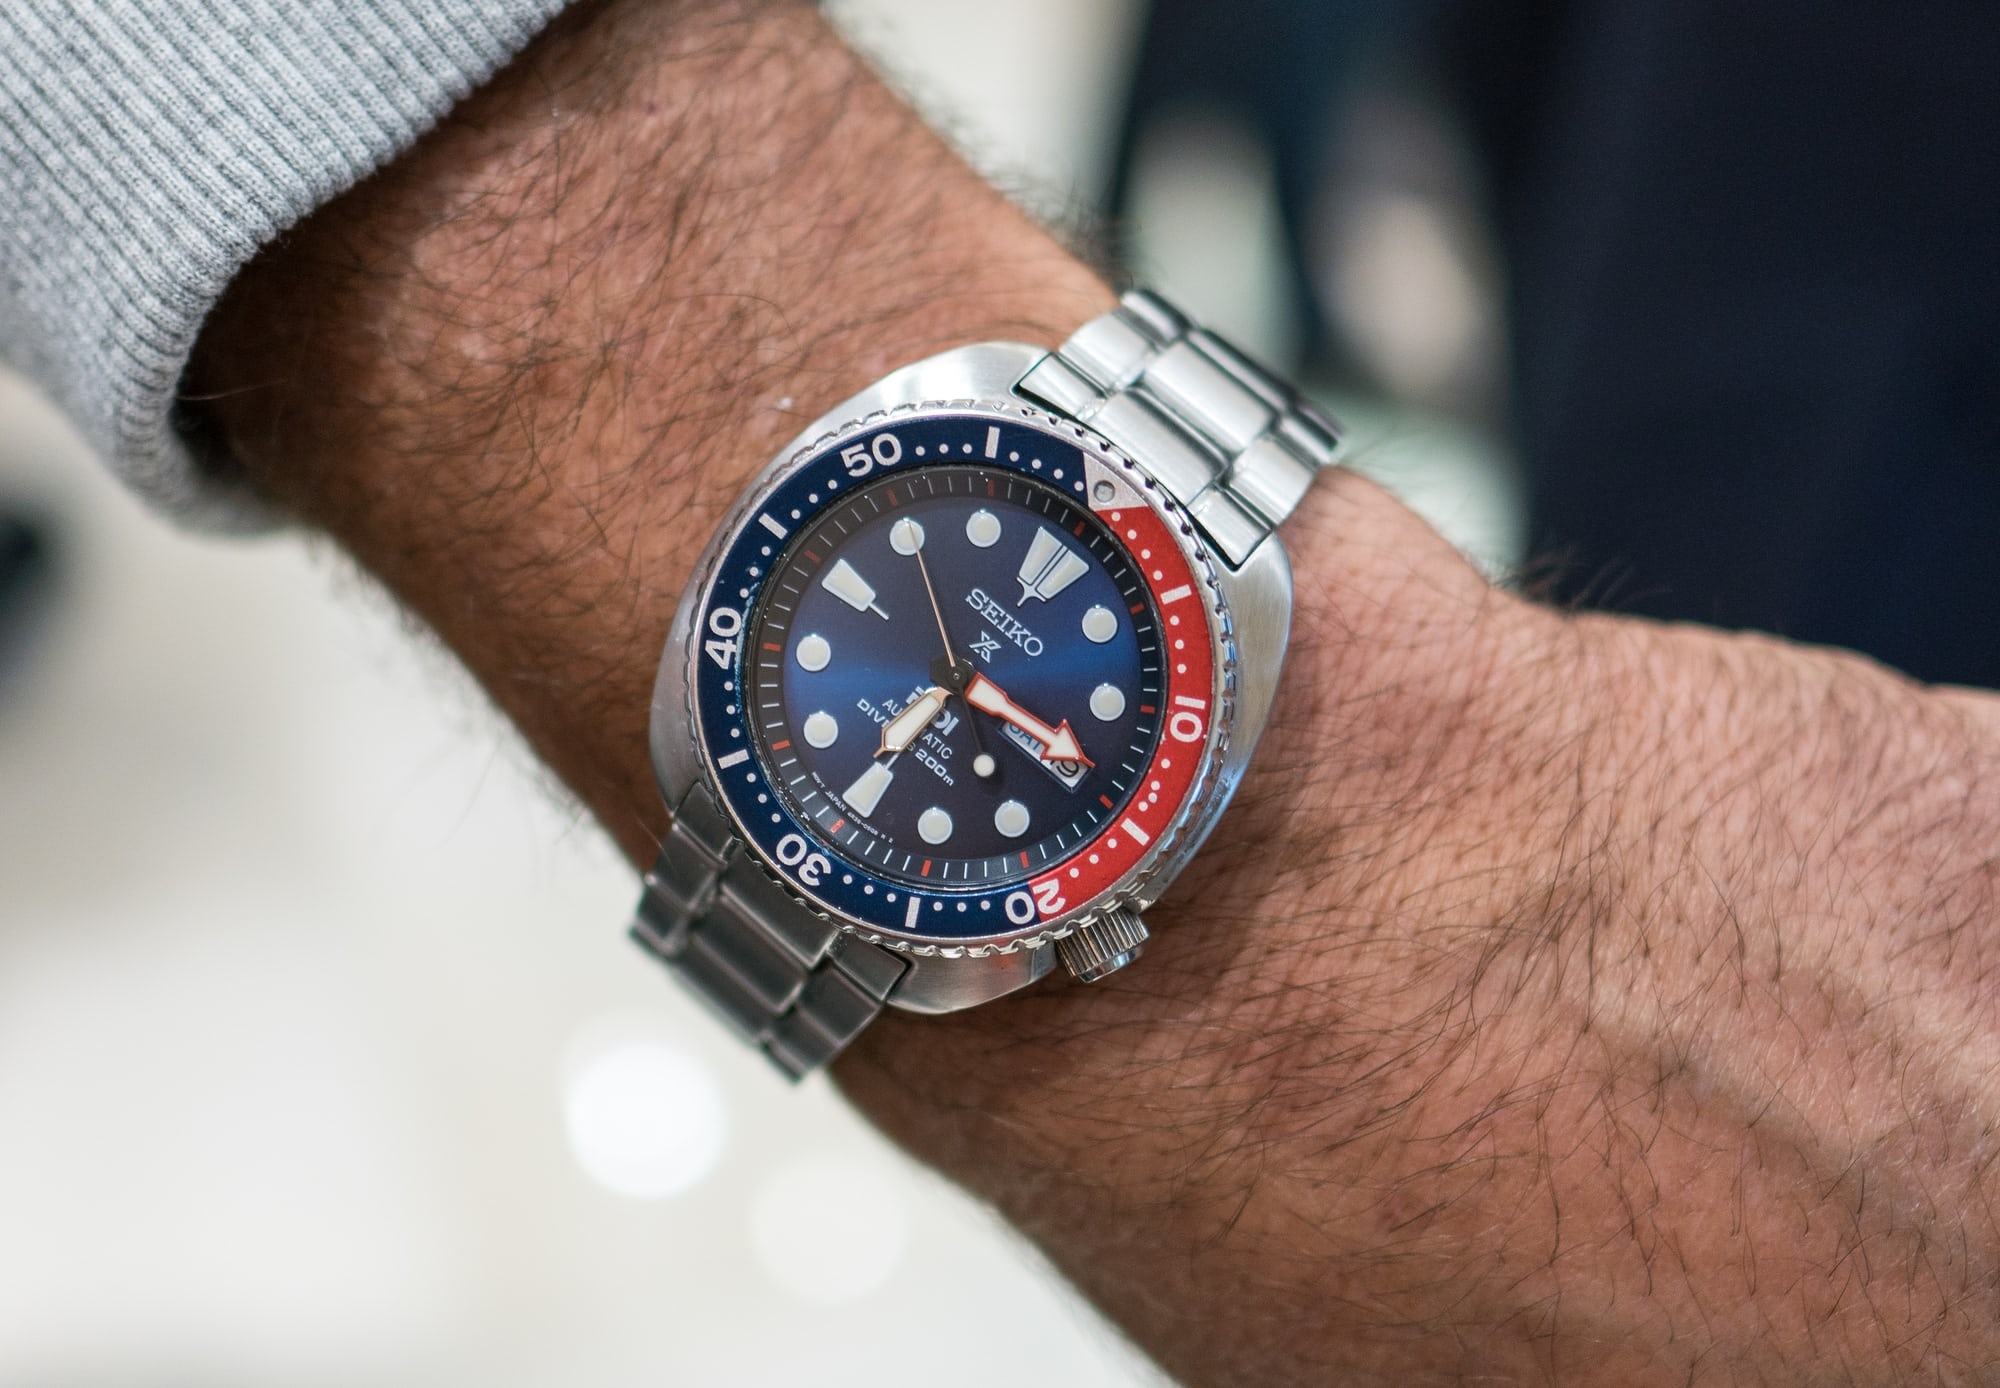 Photo Report: Car And Watch Spotting At Monterey Car Week 2017 Photo Report: Car And Watch Spotting At Monterey Car Week 2017 Monterey Car Week 2017 Watch Spotting 26